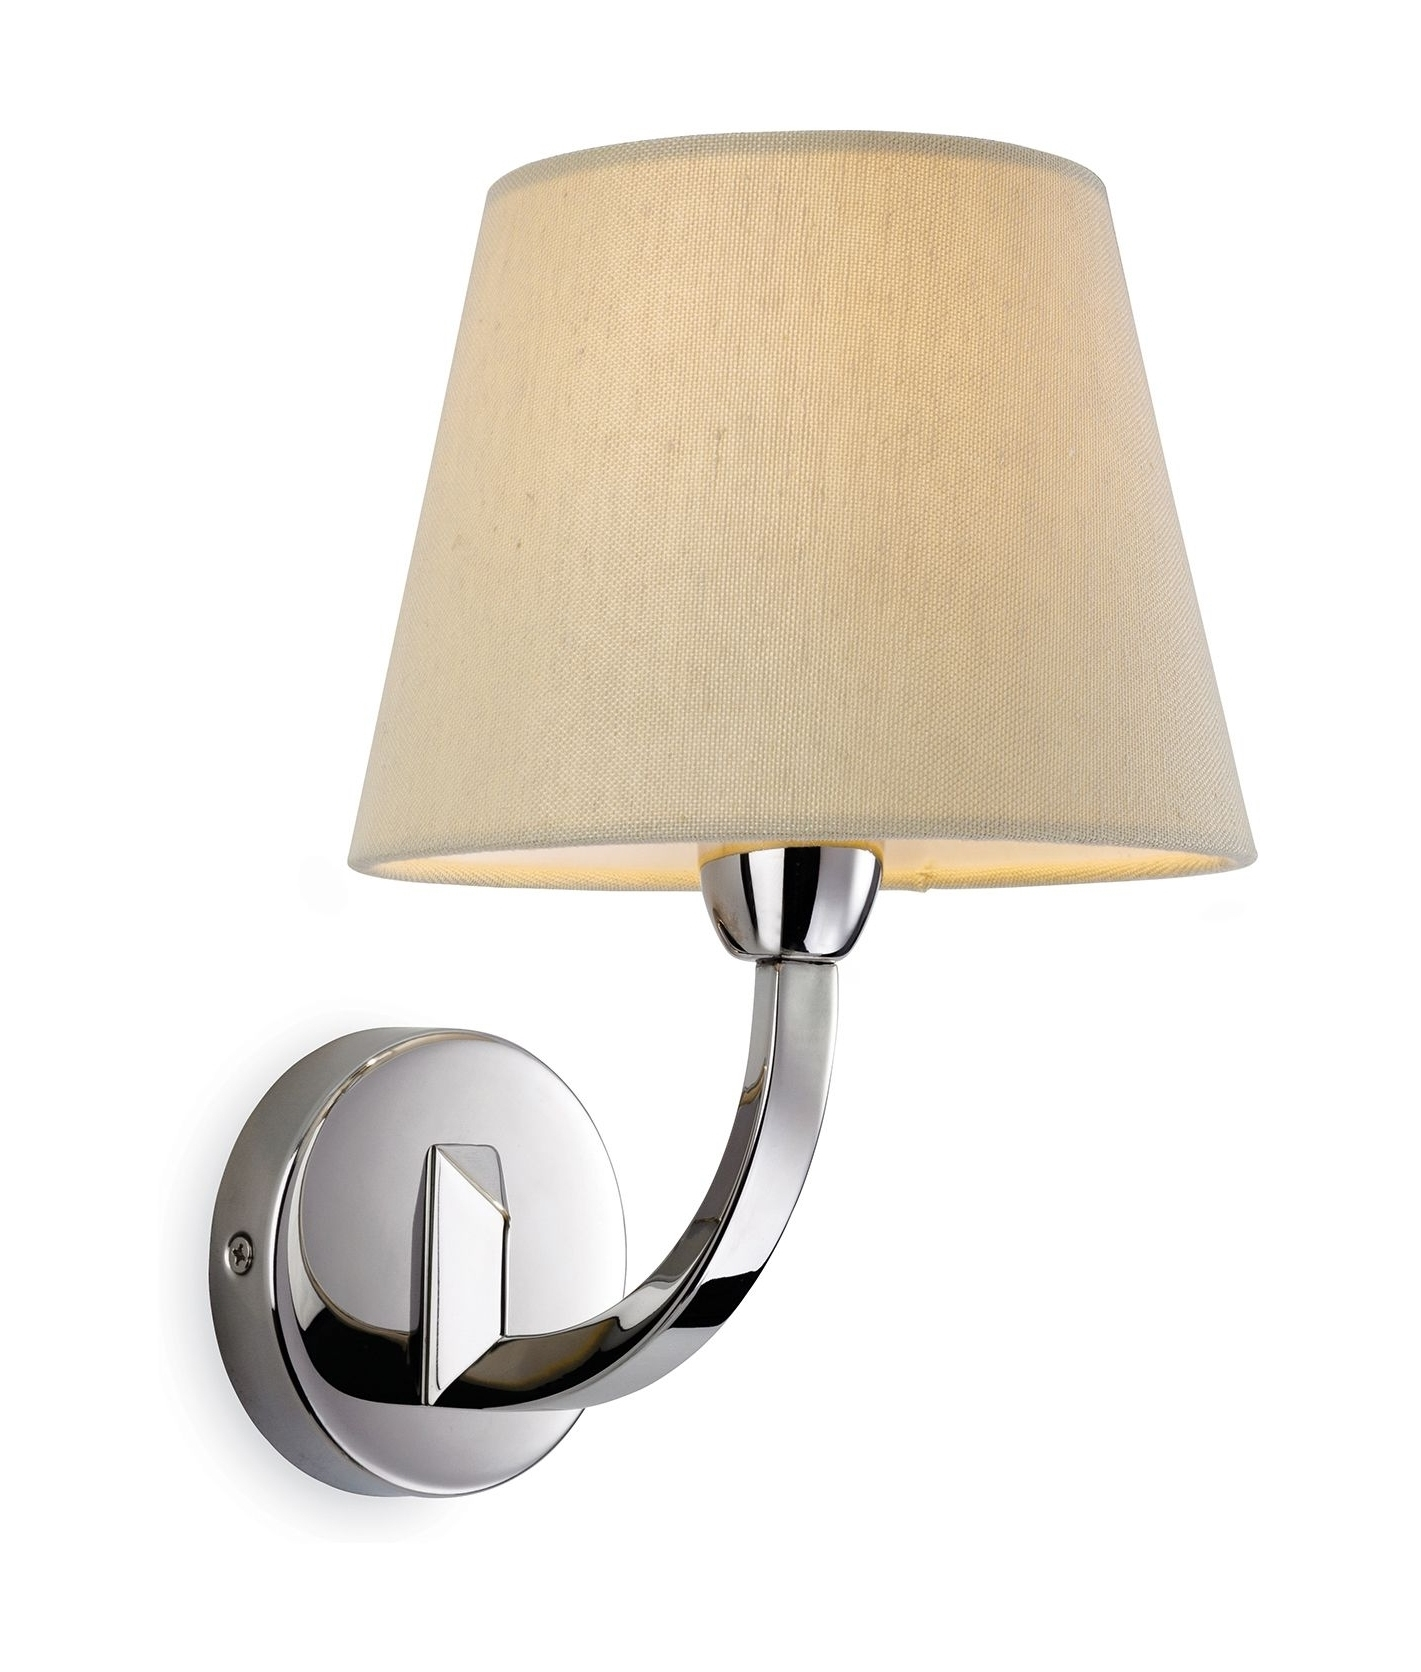 Funky Chrome Wall Lights : Chrome Single Arm Wall Light